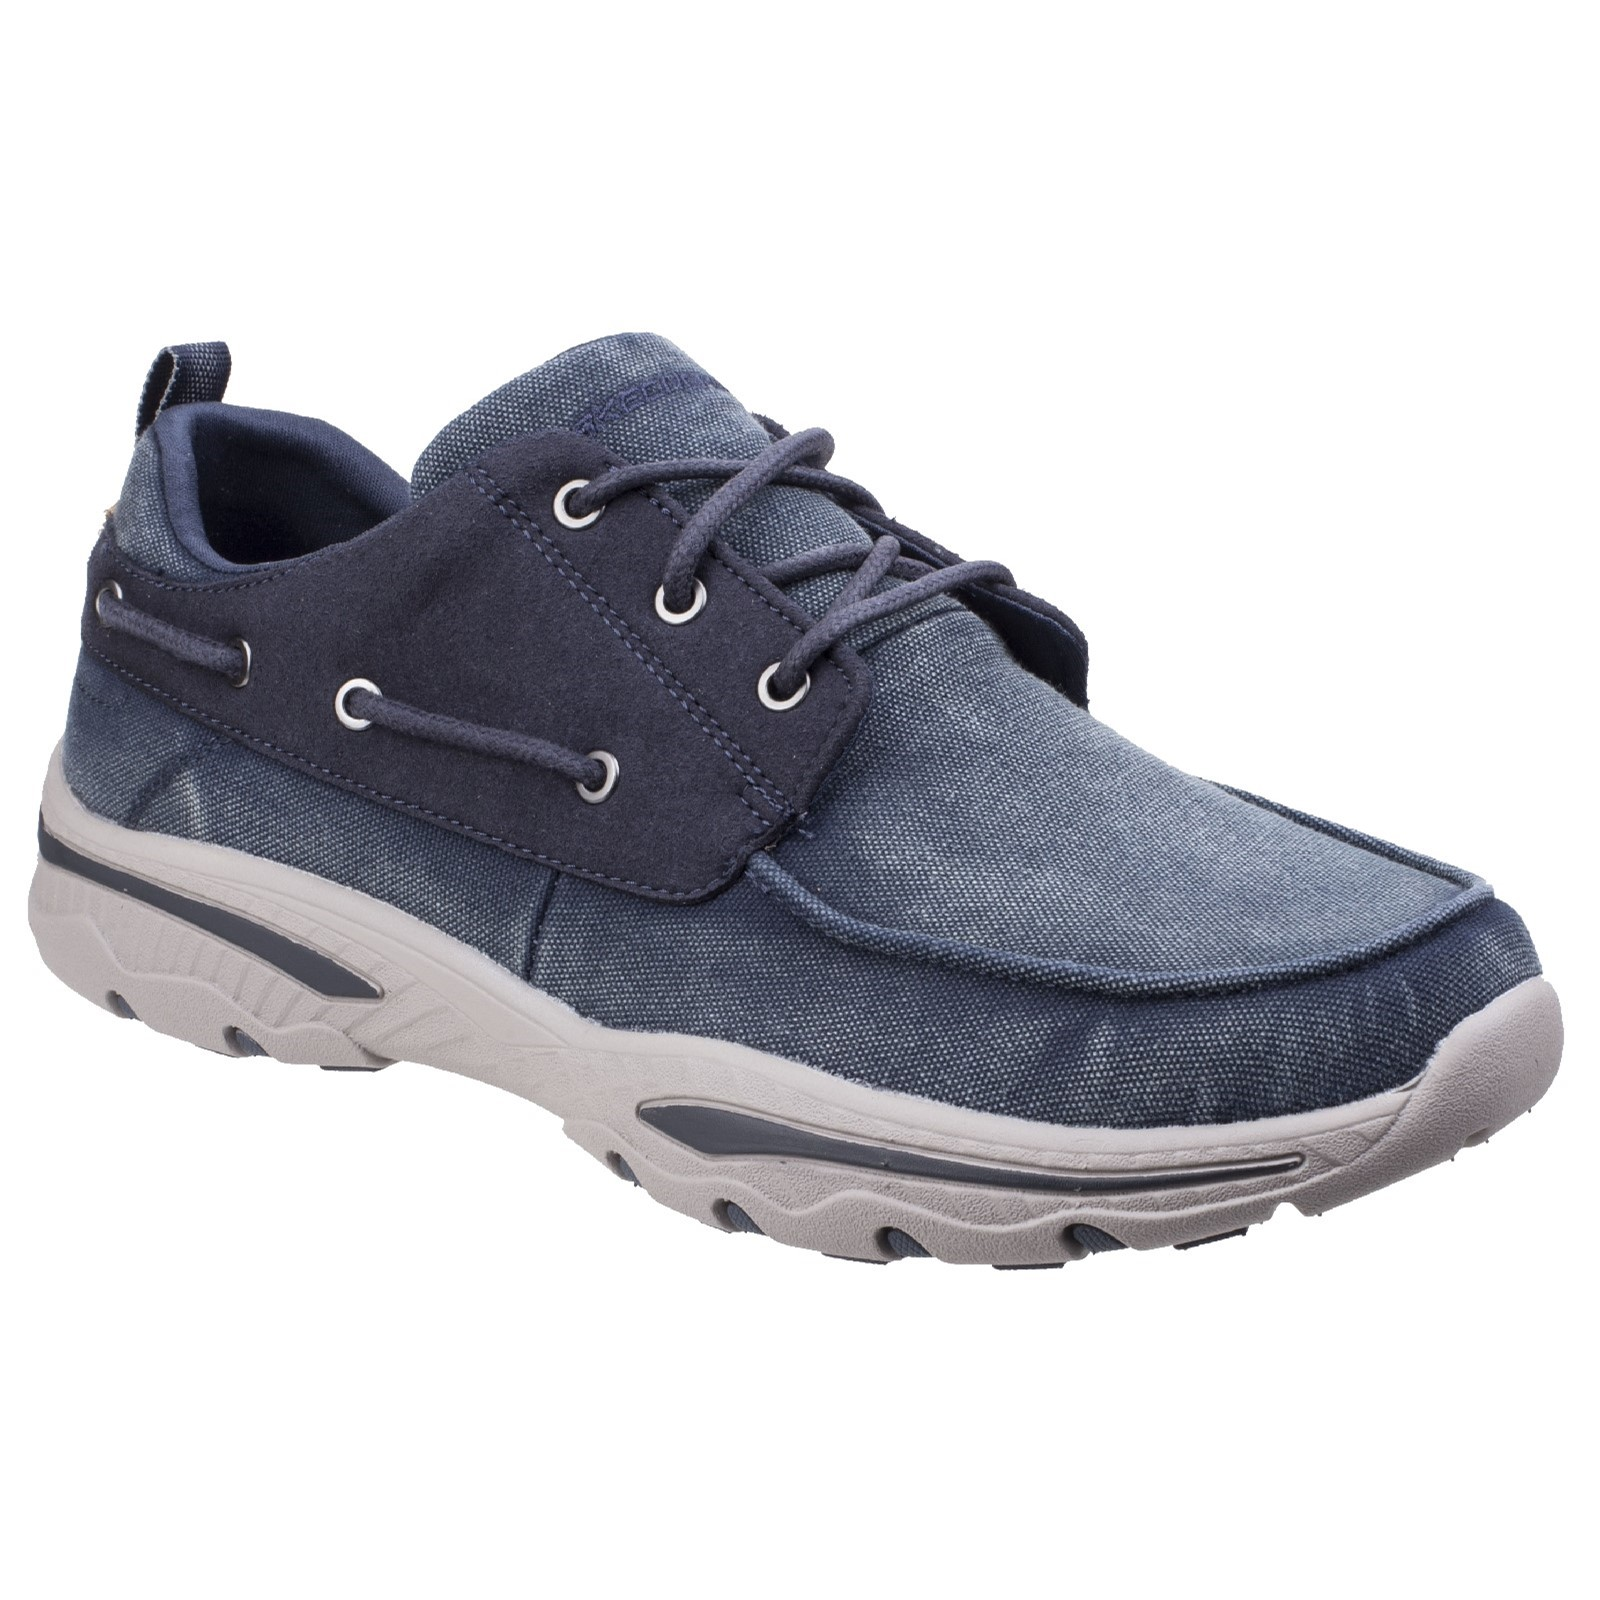 SKECHERS SK65347 Relaxed Fit Creston Vosen chocolate lace up shoe size 6-12